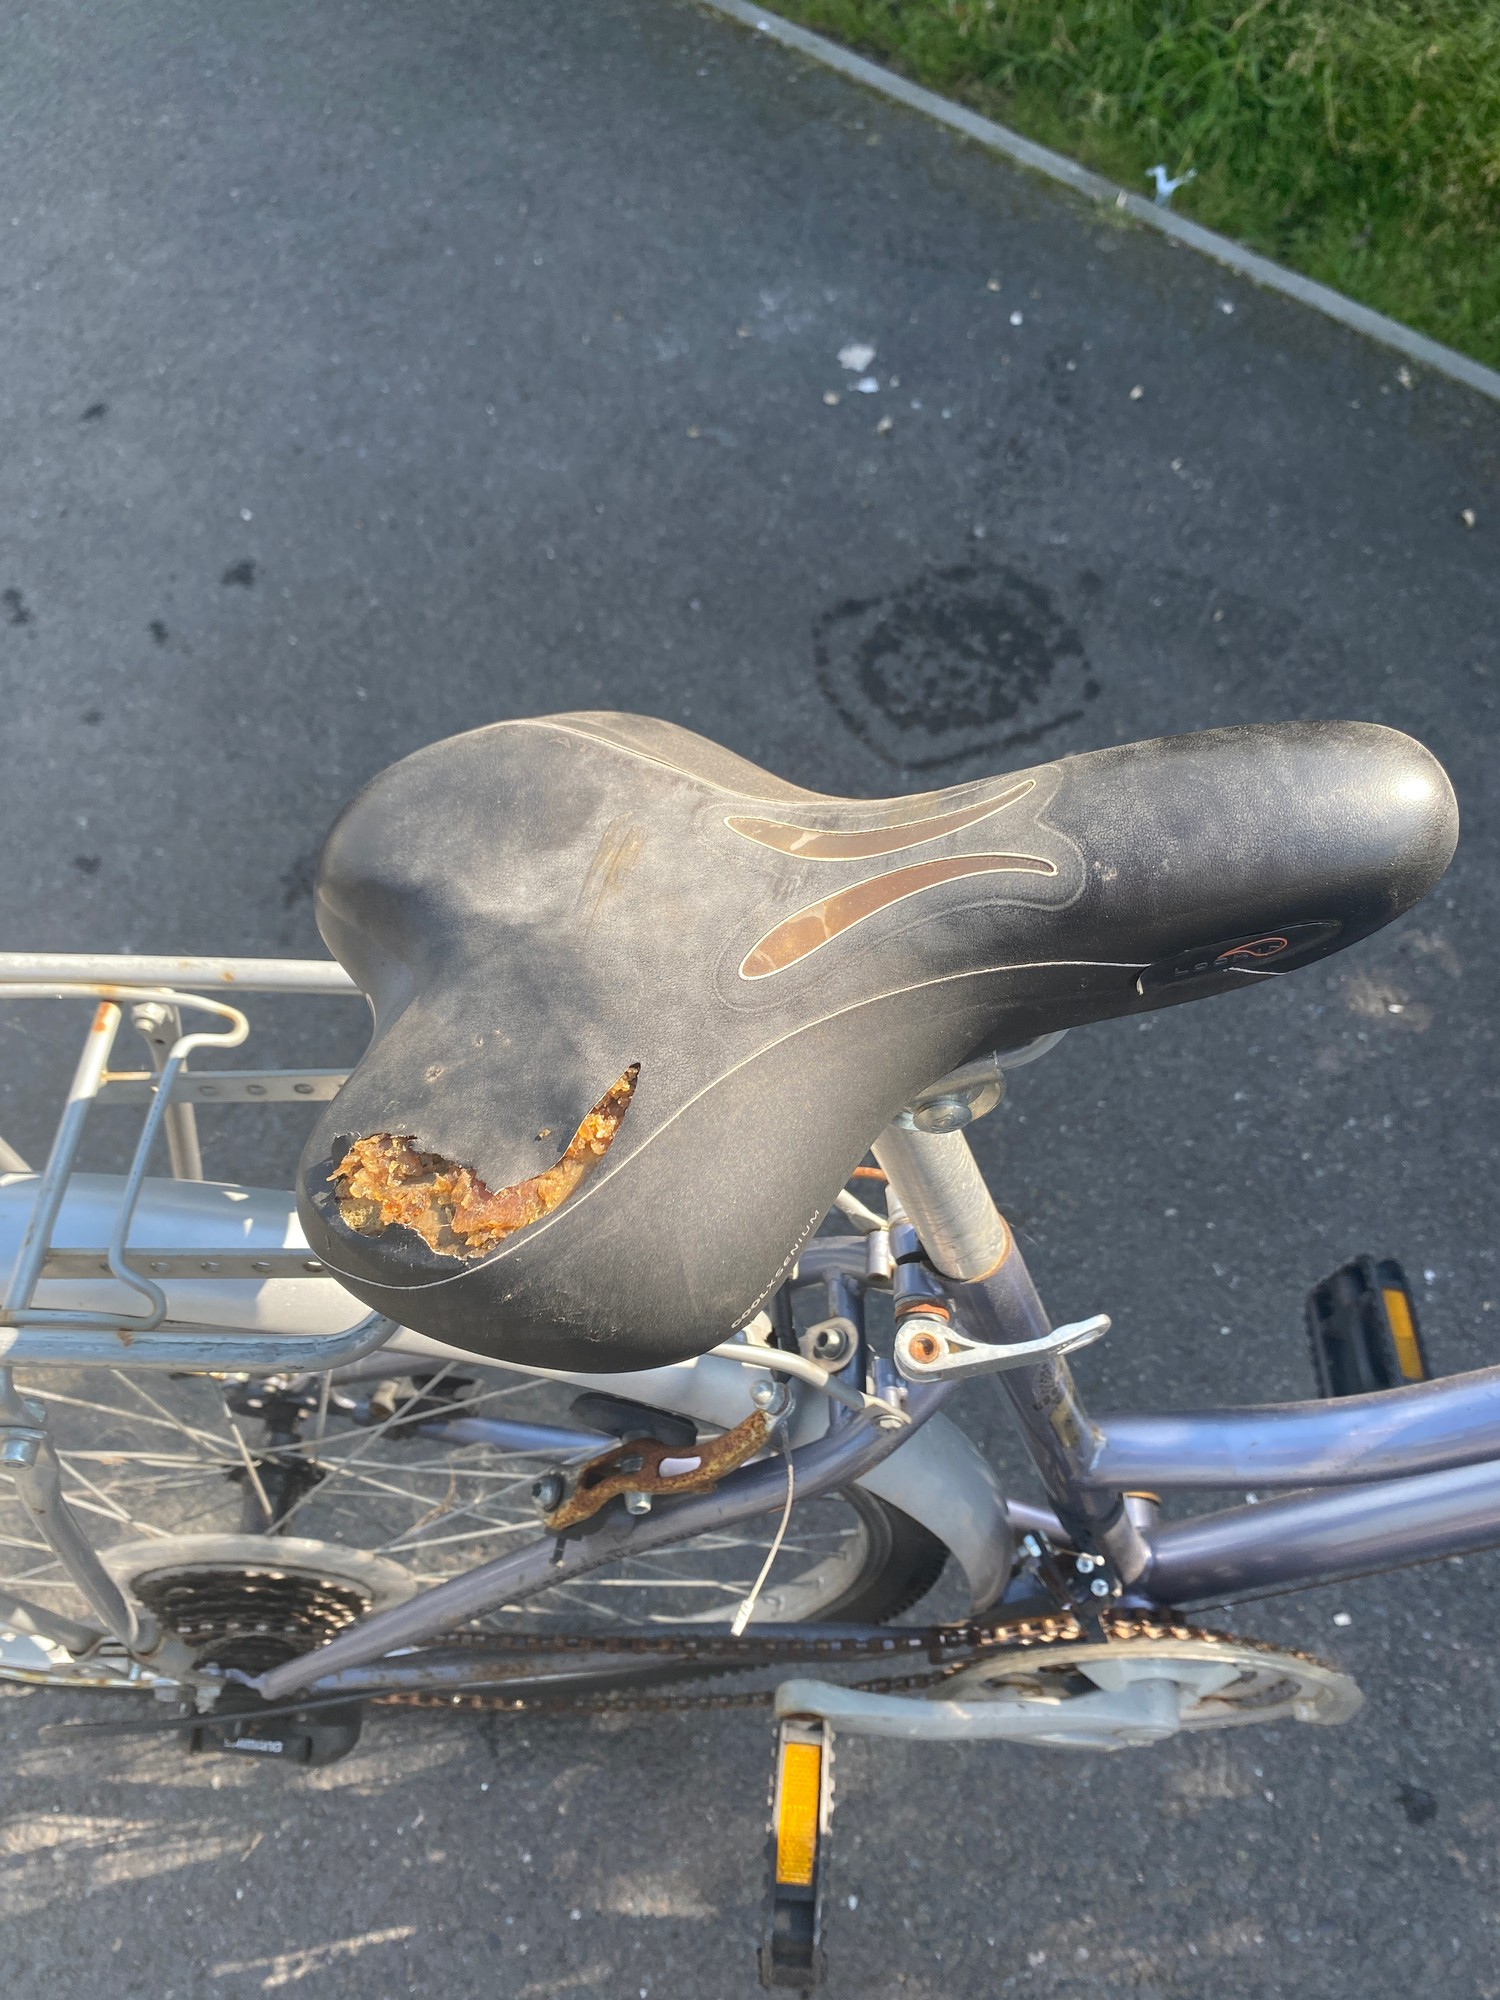 Windermere reflex ladies country bicycle - slight rip to seat - Image 2 of 2